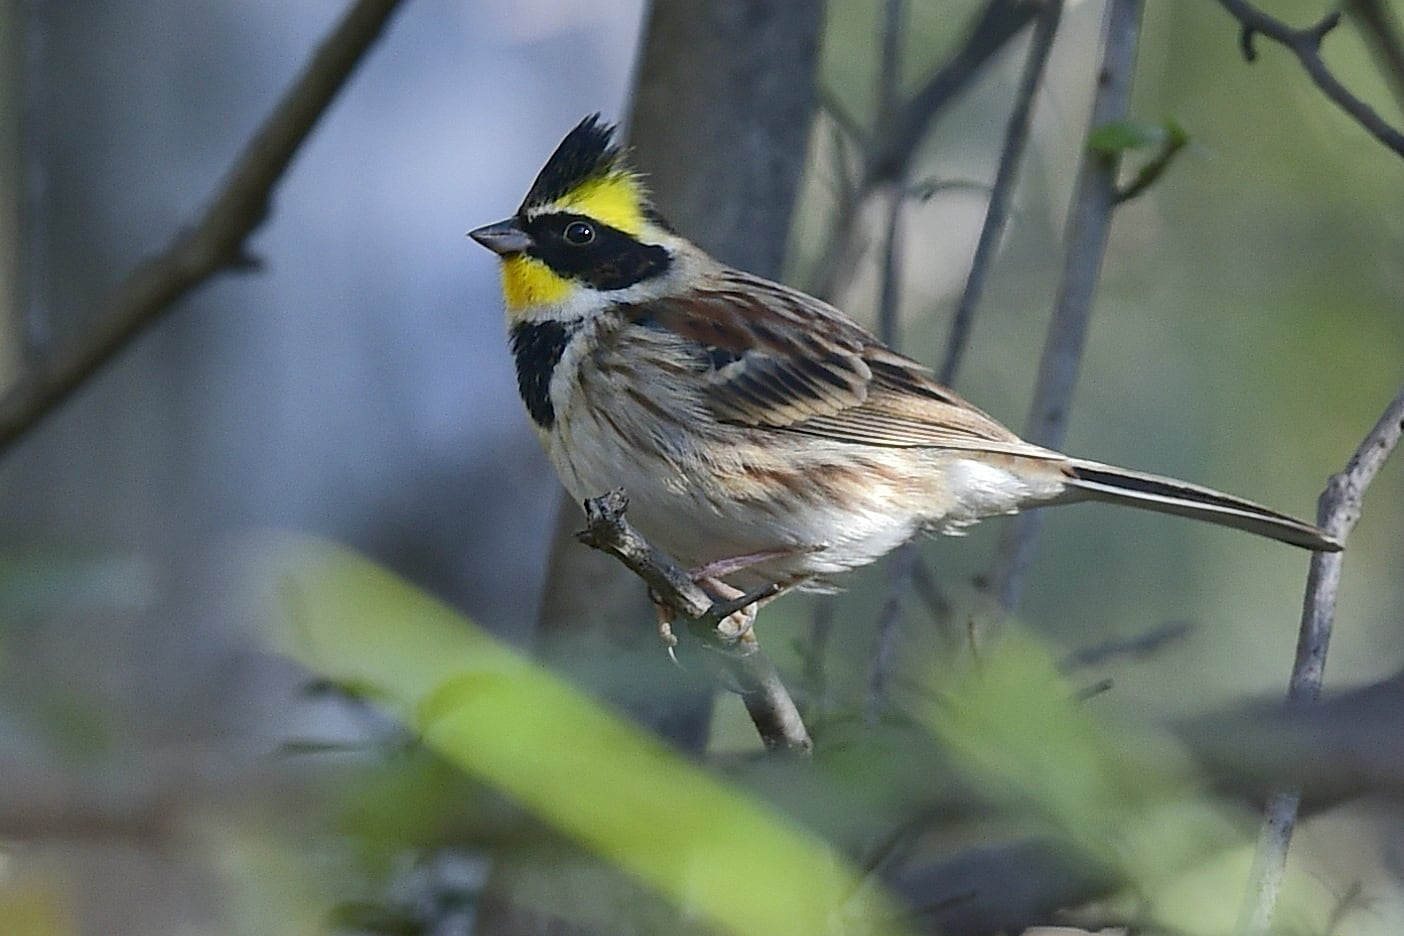 ミヤマホウジロ(Yellow-throated Bunting)      —'15.1.17—